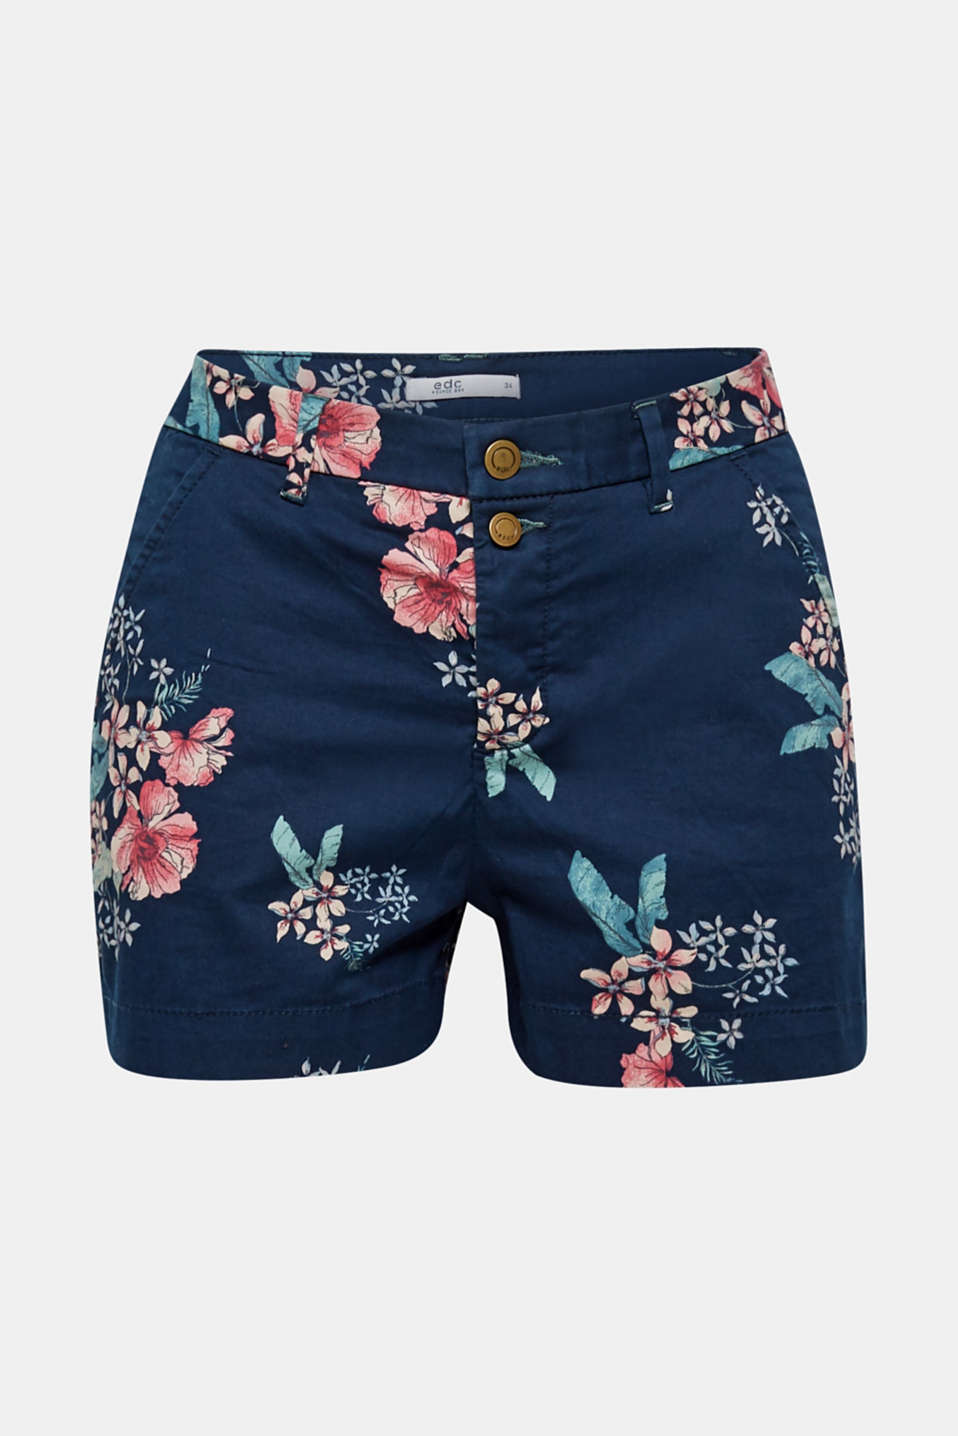 8c1bfb8c0f00d The styling of these stretch cotton shorts featuring a colourful floral  pattern and chic button placket